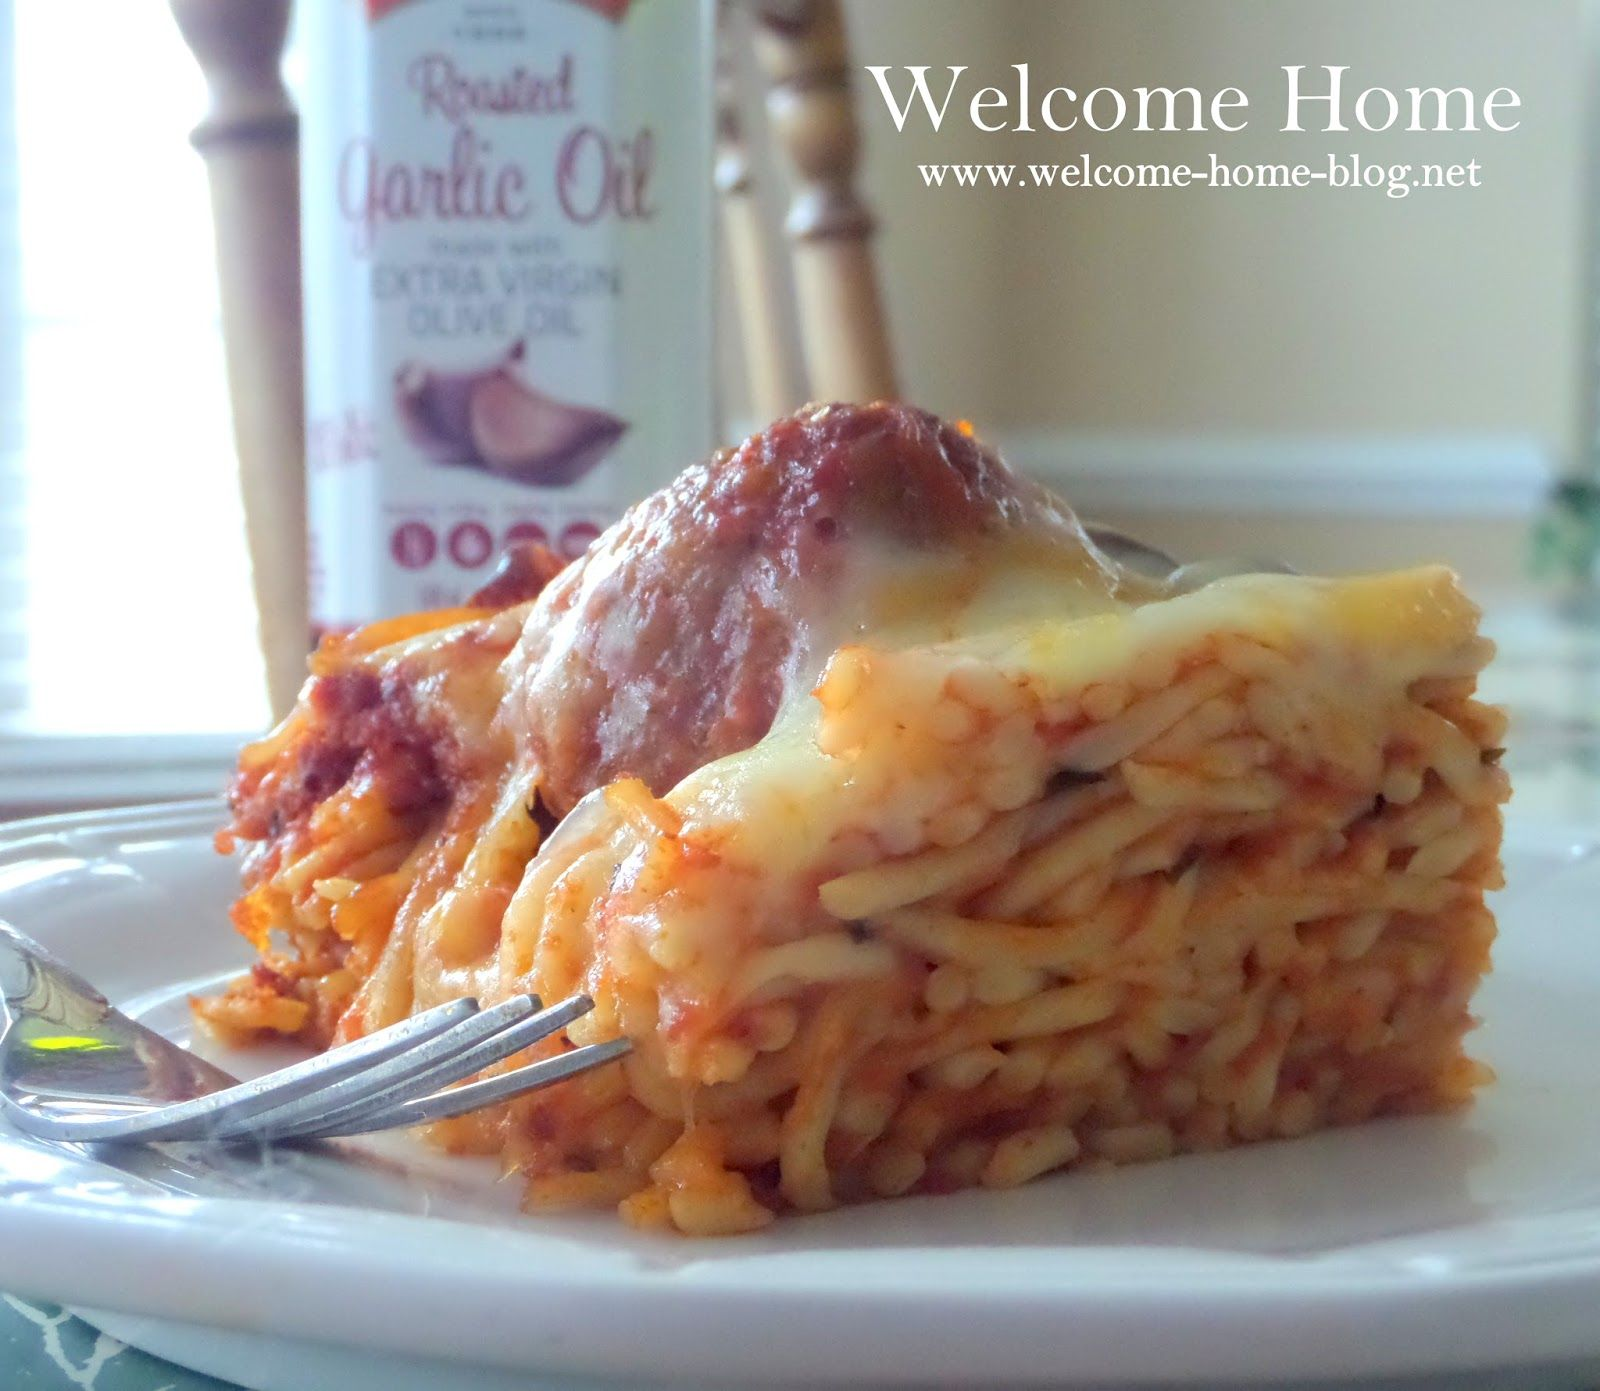 welcome home blog baked spaghetti and meatballs awesome recipies